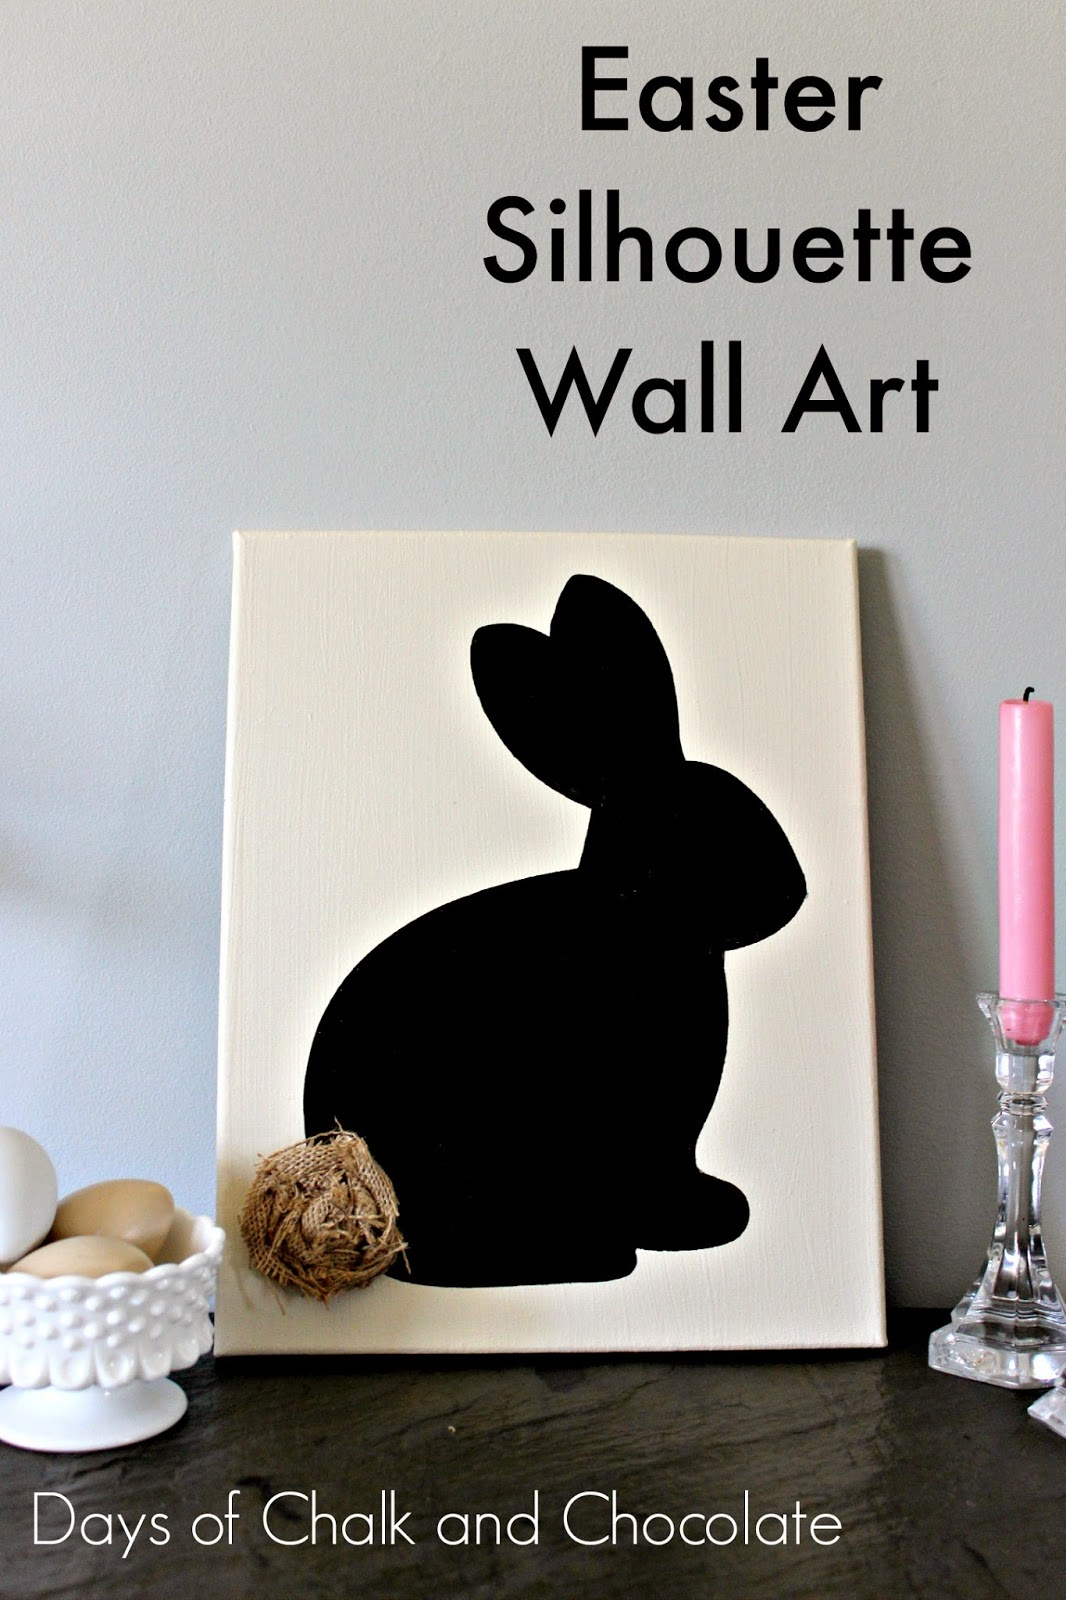 You CAN Make Easter Silhouette Wall Art!